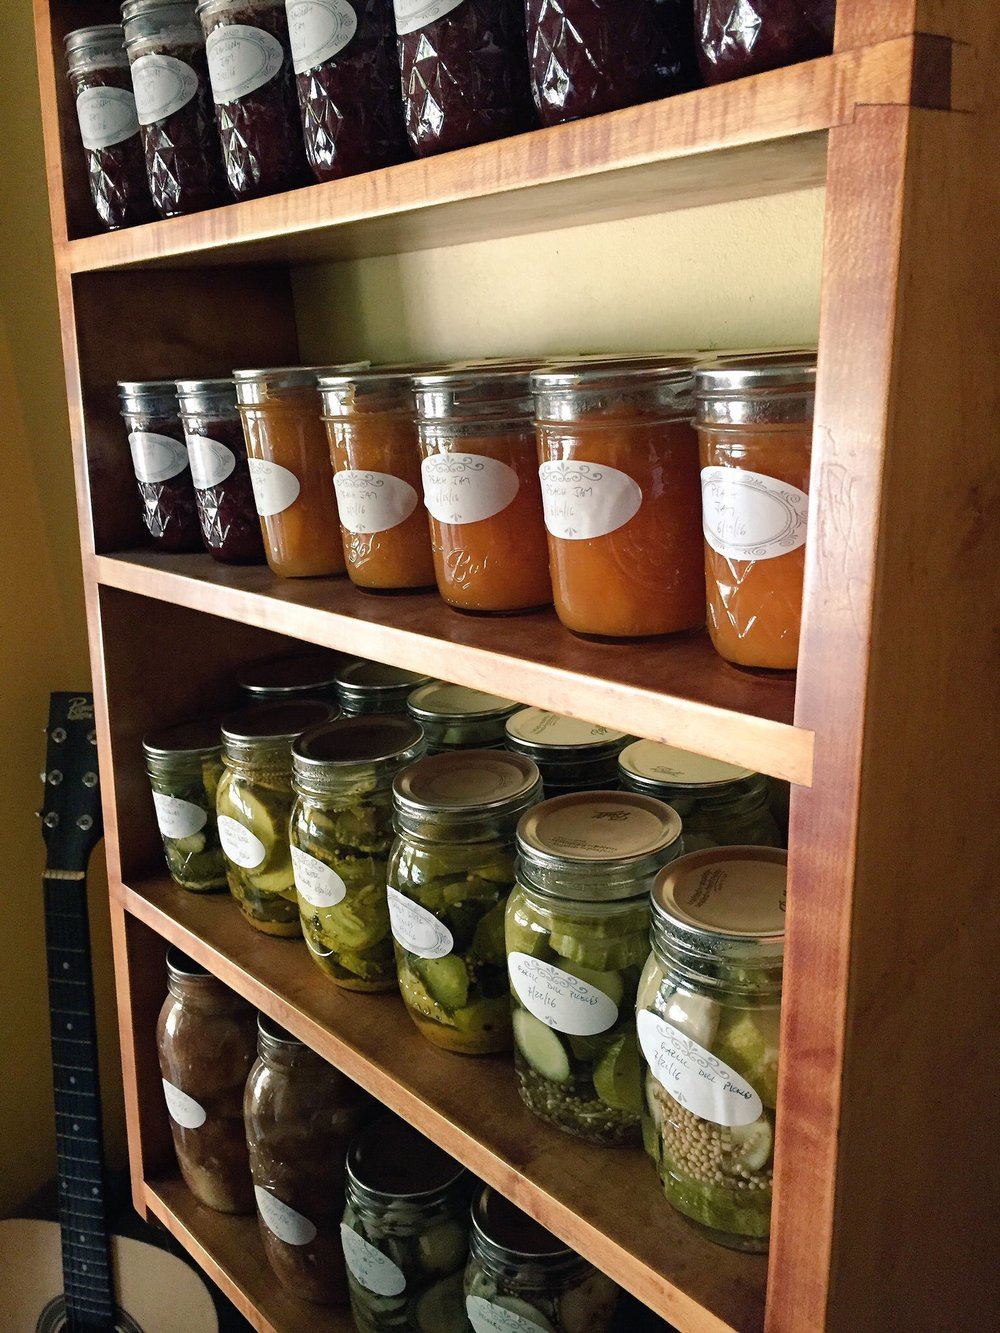 One of our canning shelves